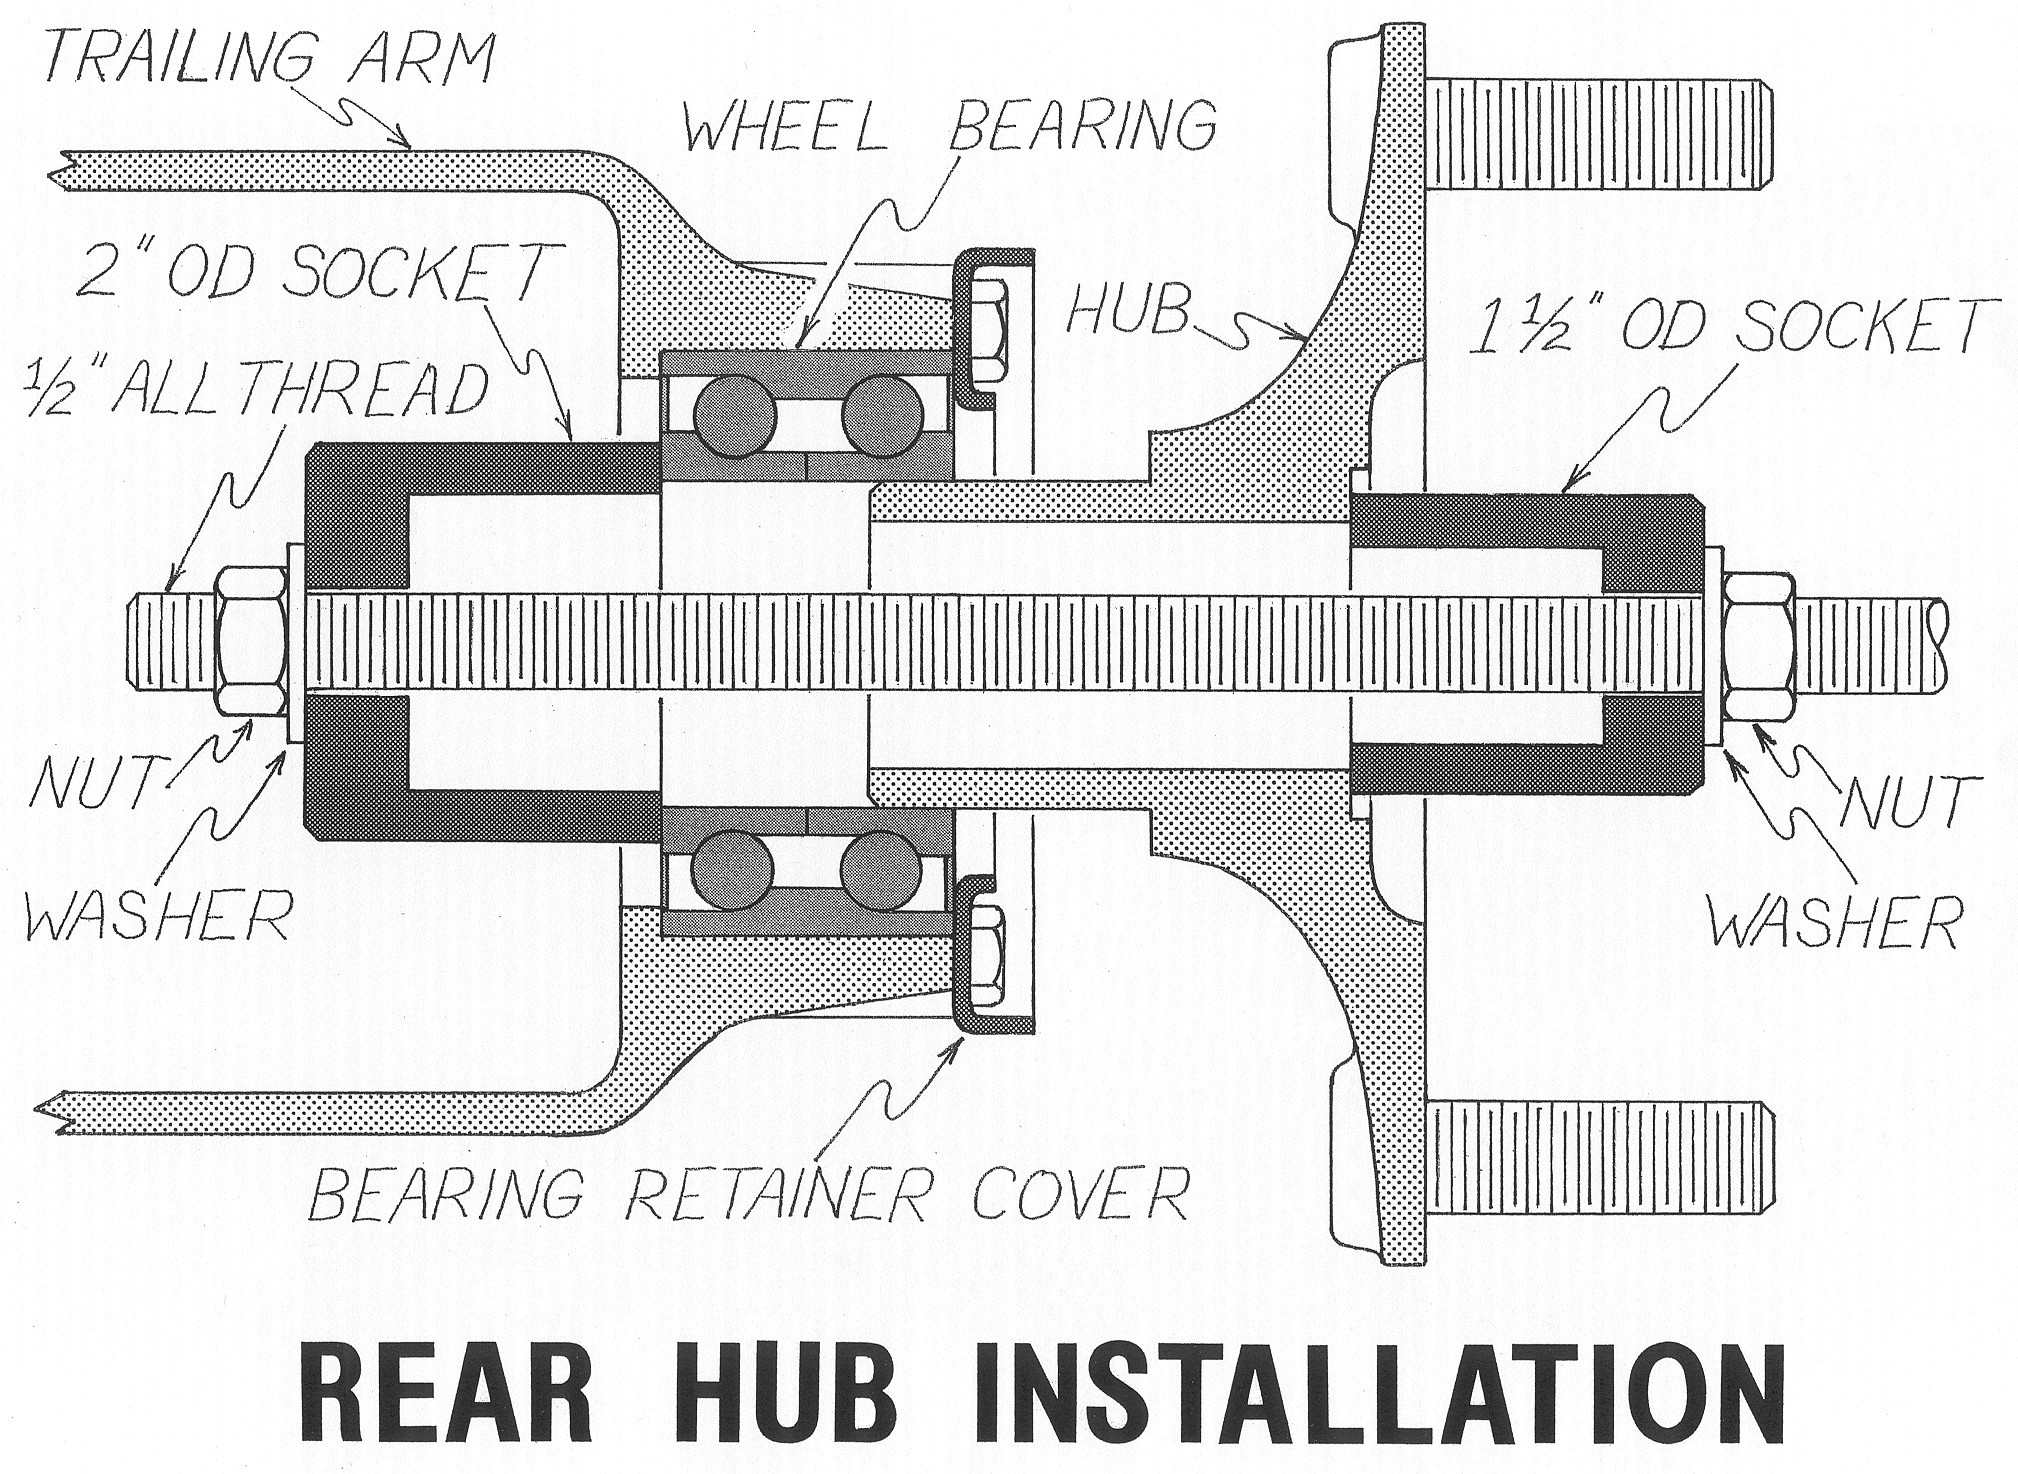 Wheel Bearing assembly Diagram Pelican Technical Article 914 Five Bolt Pattern Conversion Of Wheel Bearing assembly Diagram